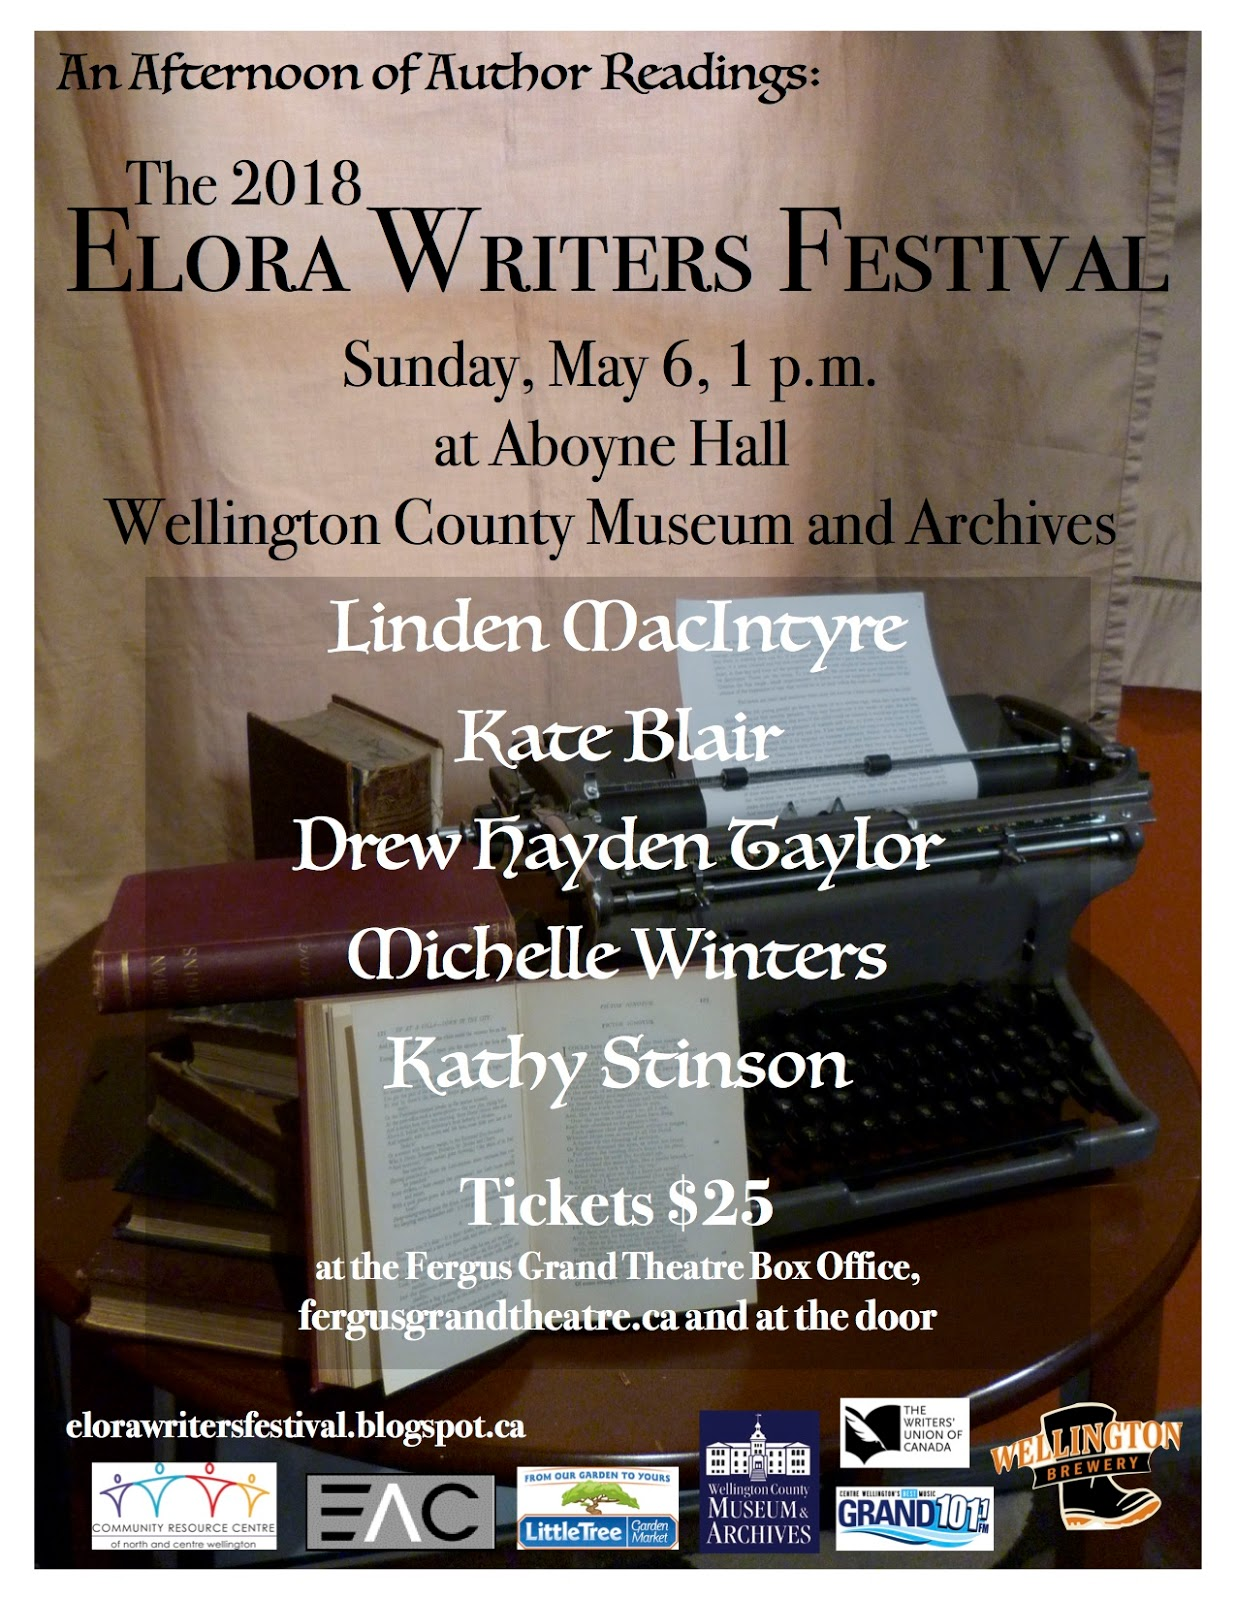 Elora Writers Festival Poster